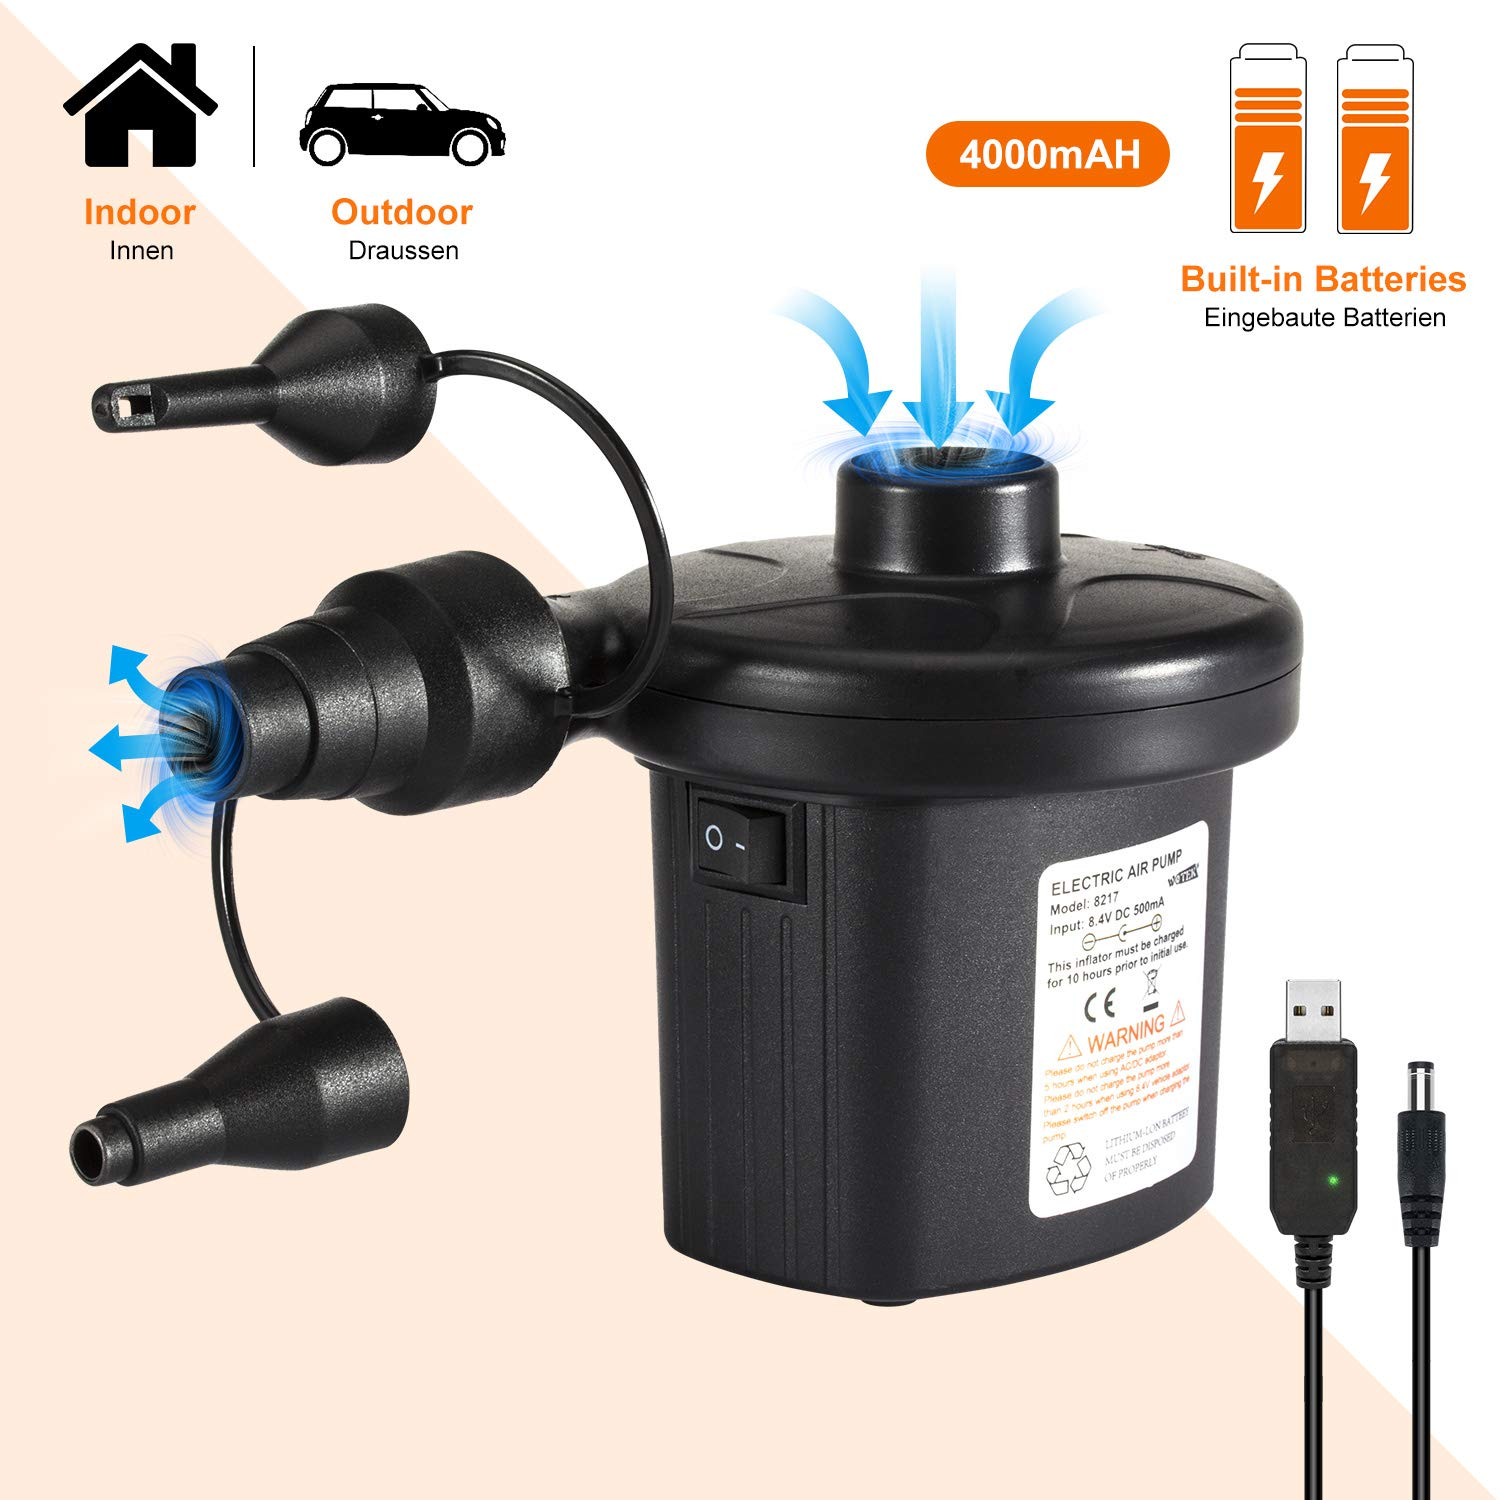 Deeplee Electric Pump Rechargeable Air Pump 4000mAh Battery for Paddling Pool Air bed Inflatables Quick-Fill Inflator Deflator 2-in-1 for Indoor Outdoor Camping